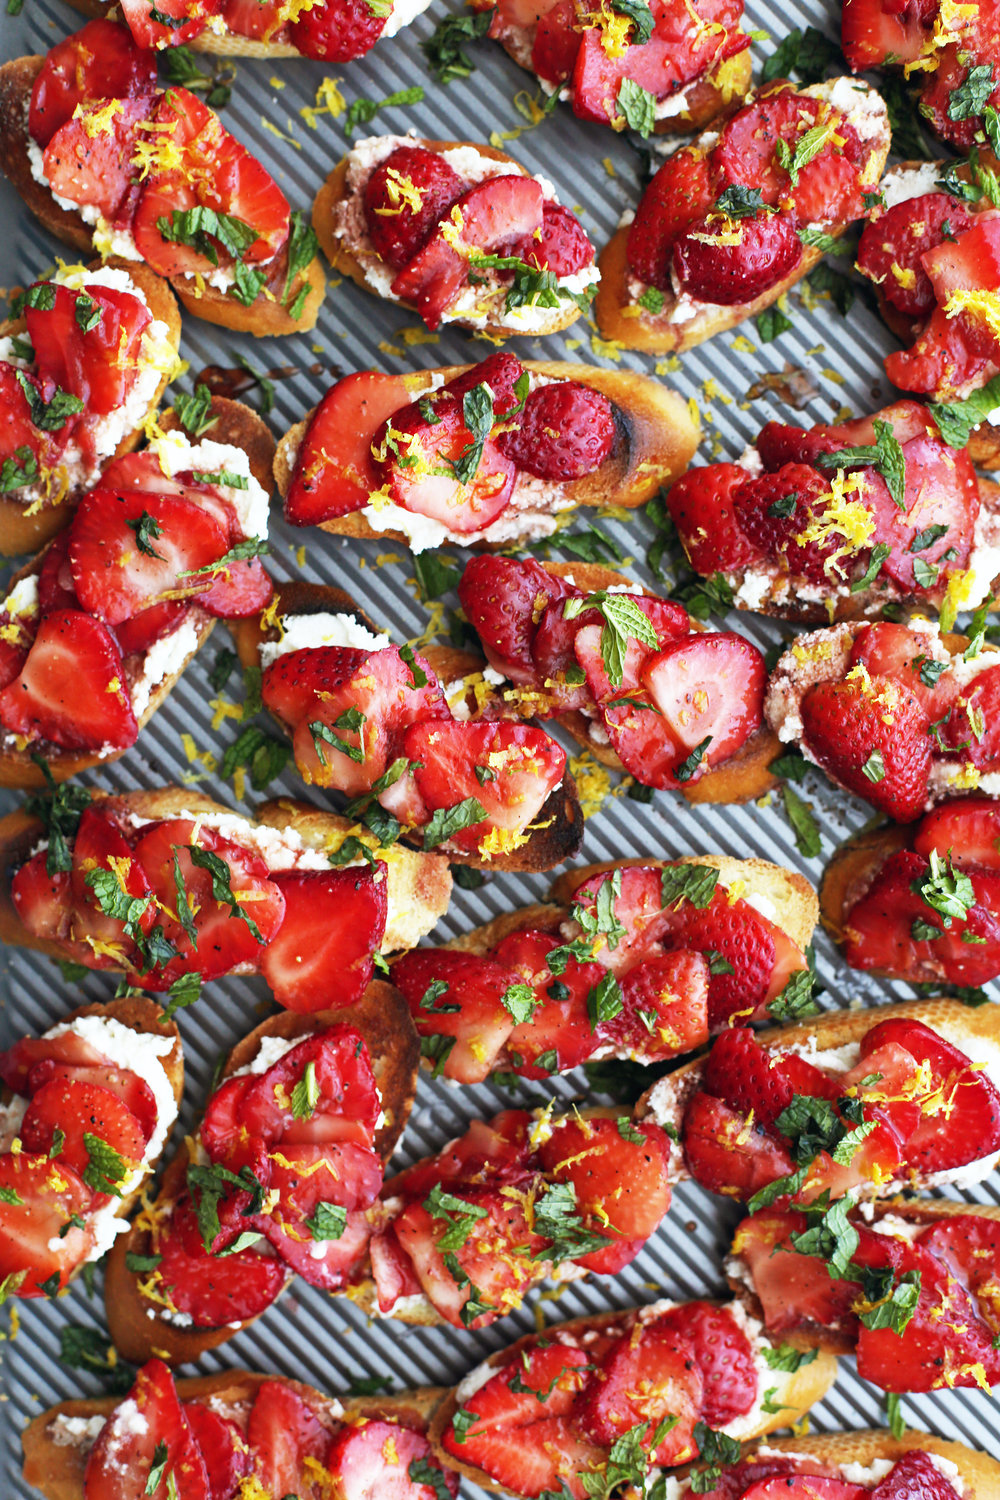 A baking sheet full of Balsamic Strawberry Ricotta Crostini with fresh lemon zest and mint on top.